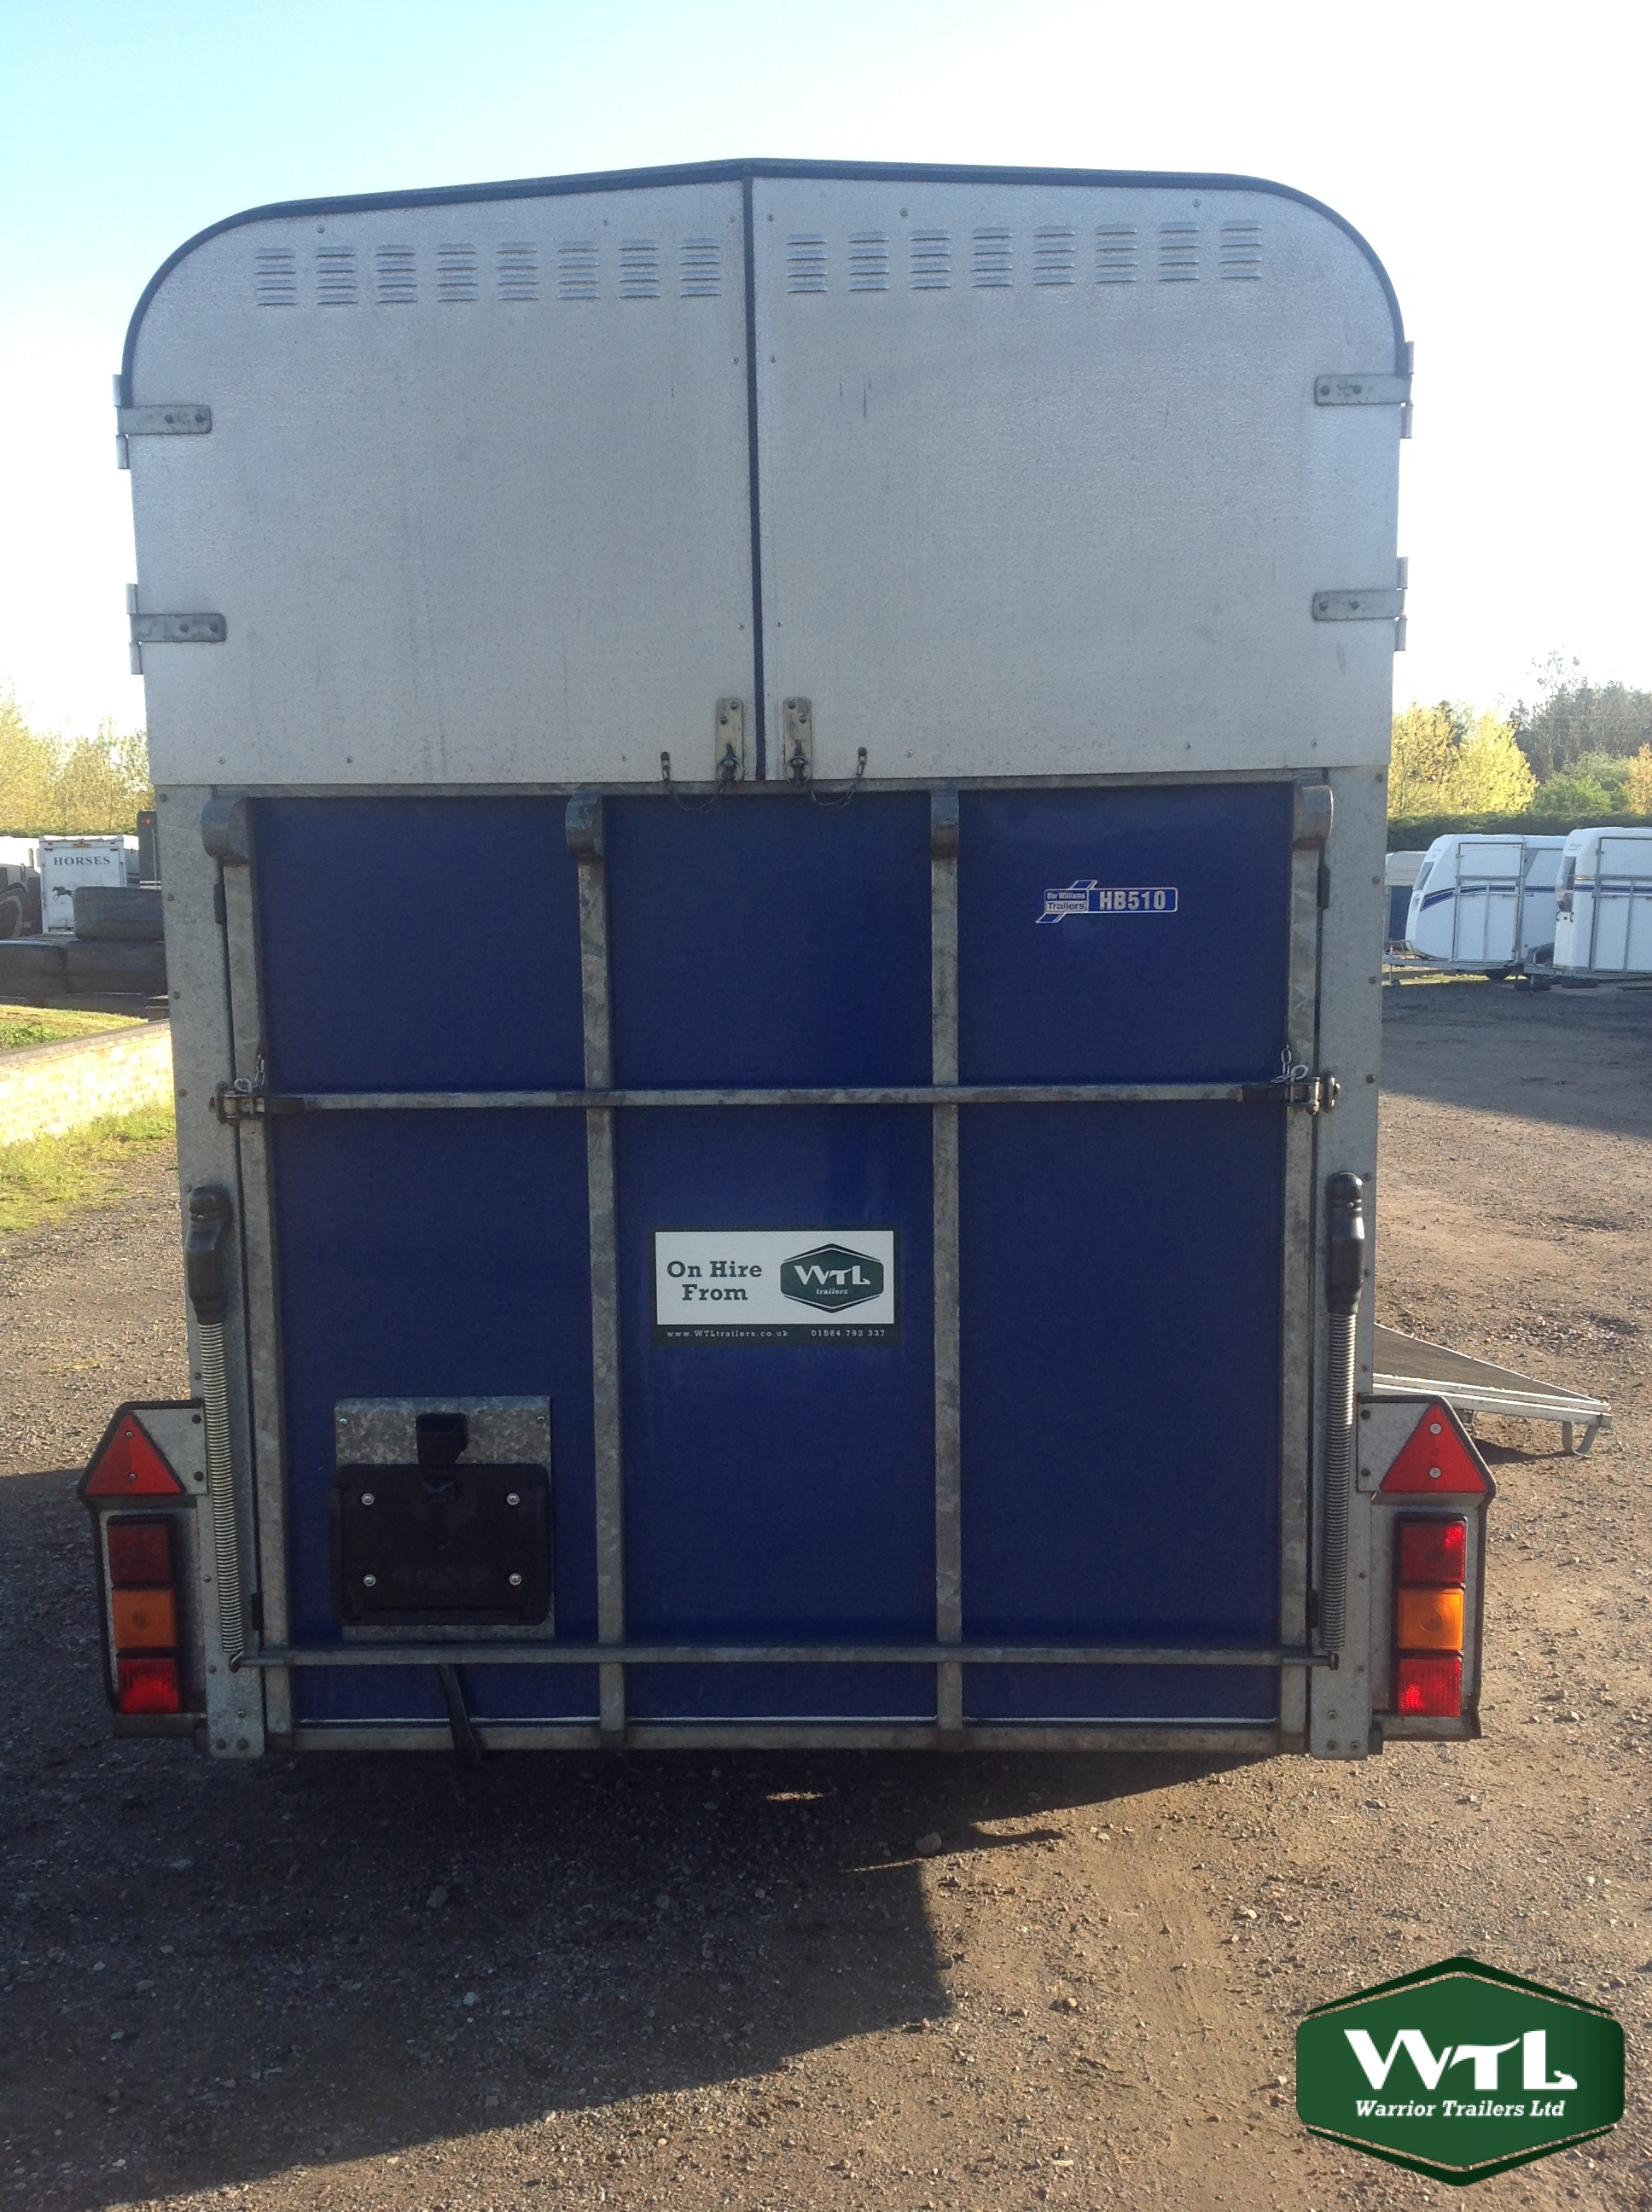 Warrior trailers ltd trailer hire ifor williams 510 on wiring diagram for ifor williams horse trailer Equipment Trailer Wiring Diagram 7 Round Trailer Wiring Diagram